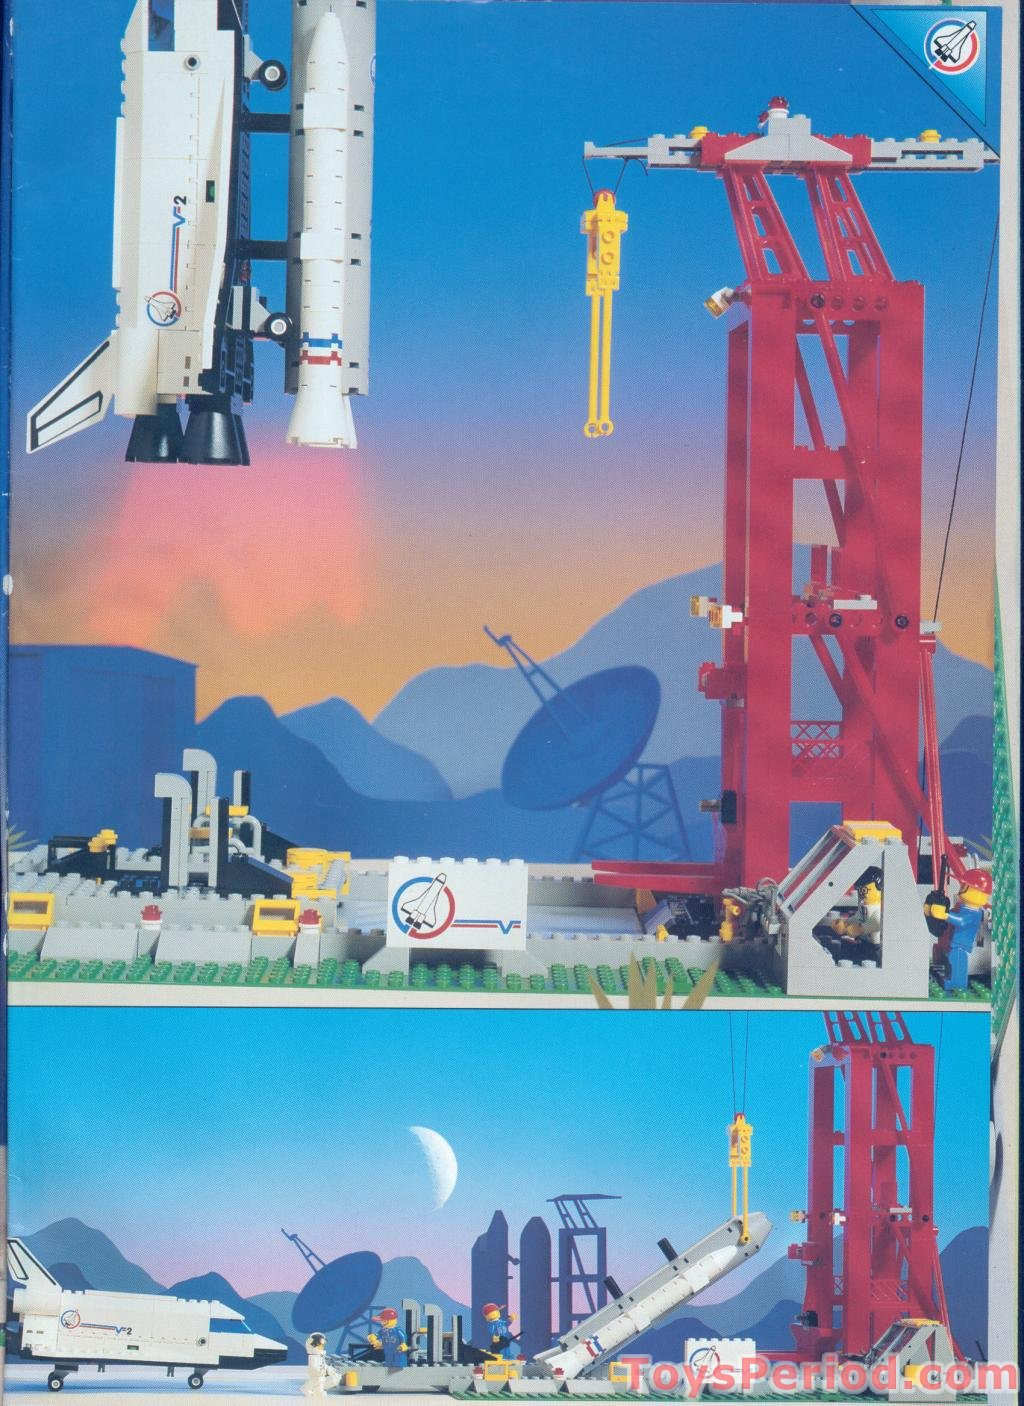 lego space shuttle launch pad 6339 - photo #14